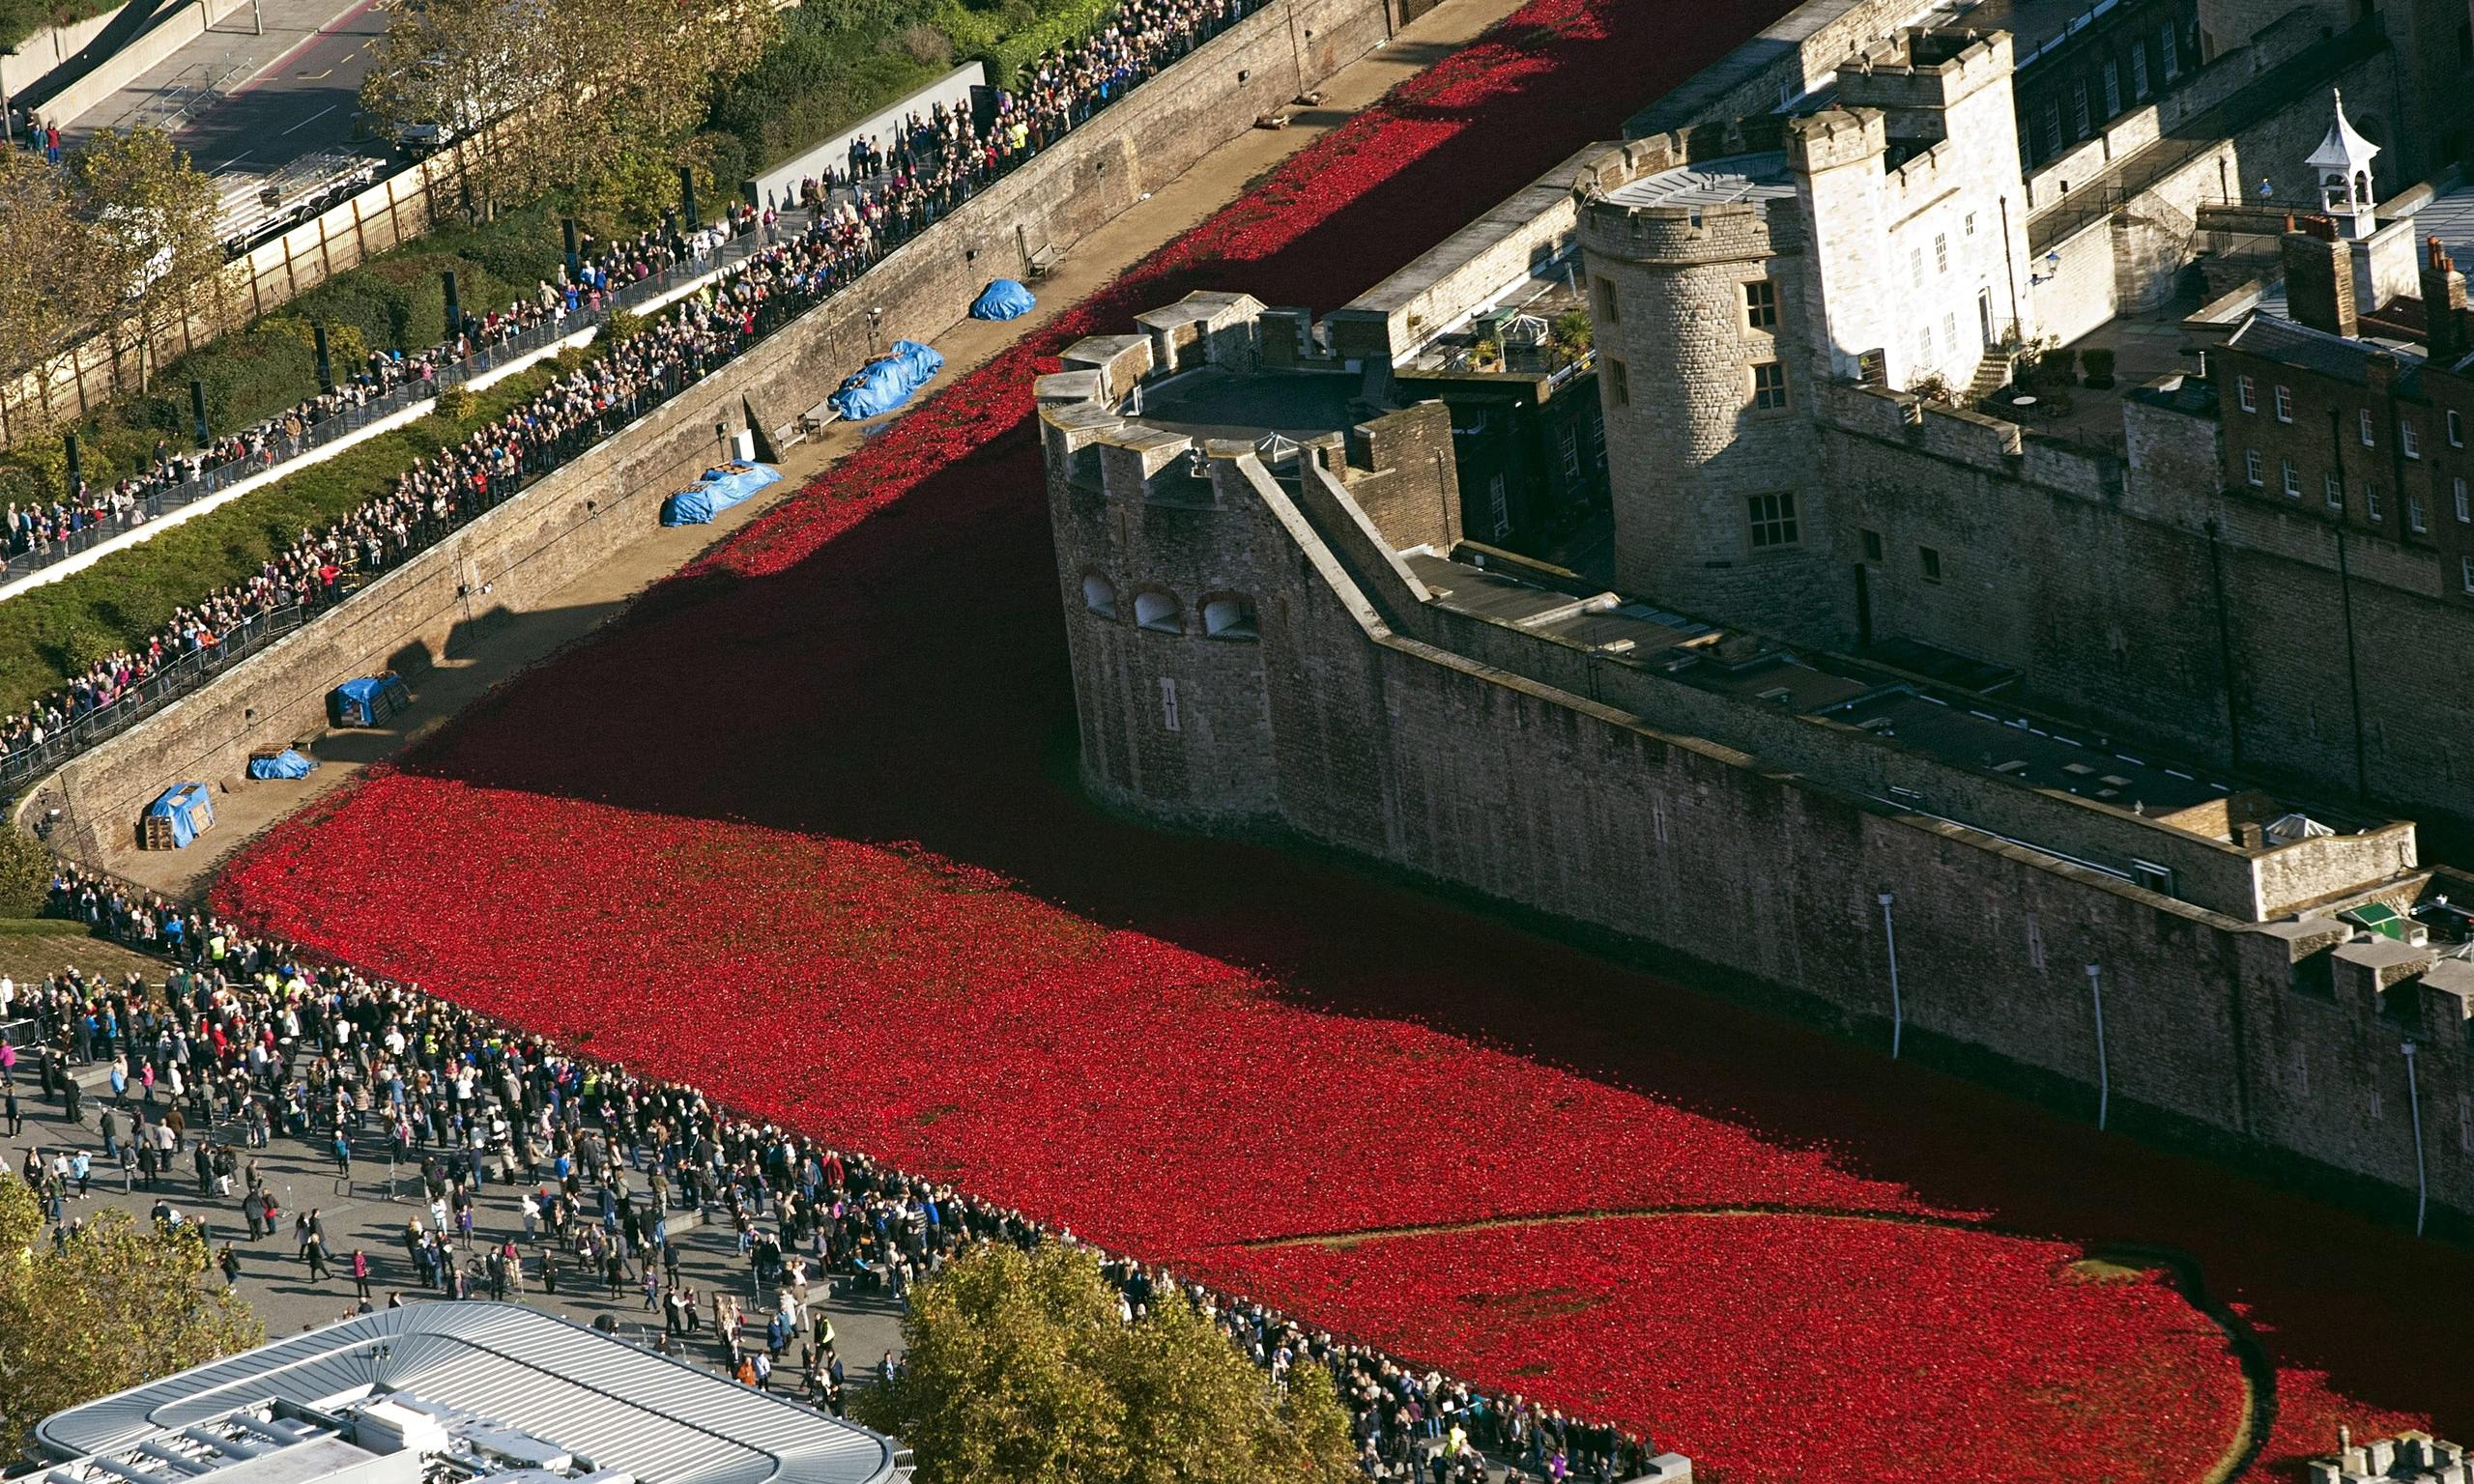 Art Installation Tower of London Poppies Tower of London Poppies to be